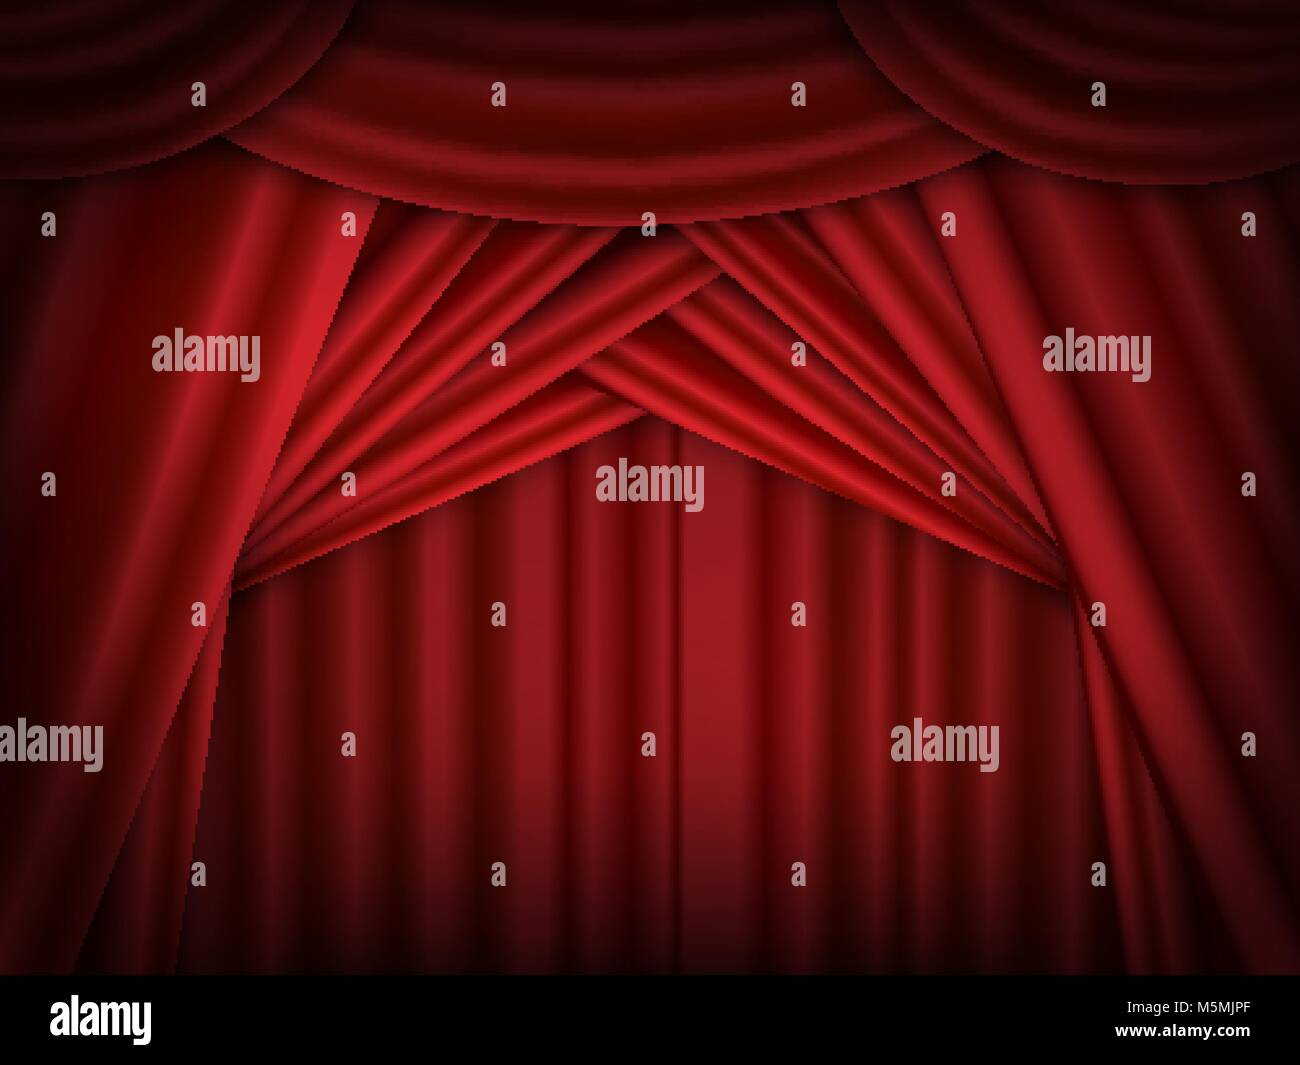 Vector red stage curtains open. Red drapes reflected. - Stock Vector